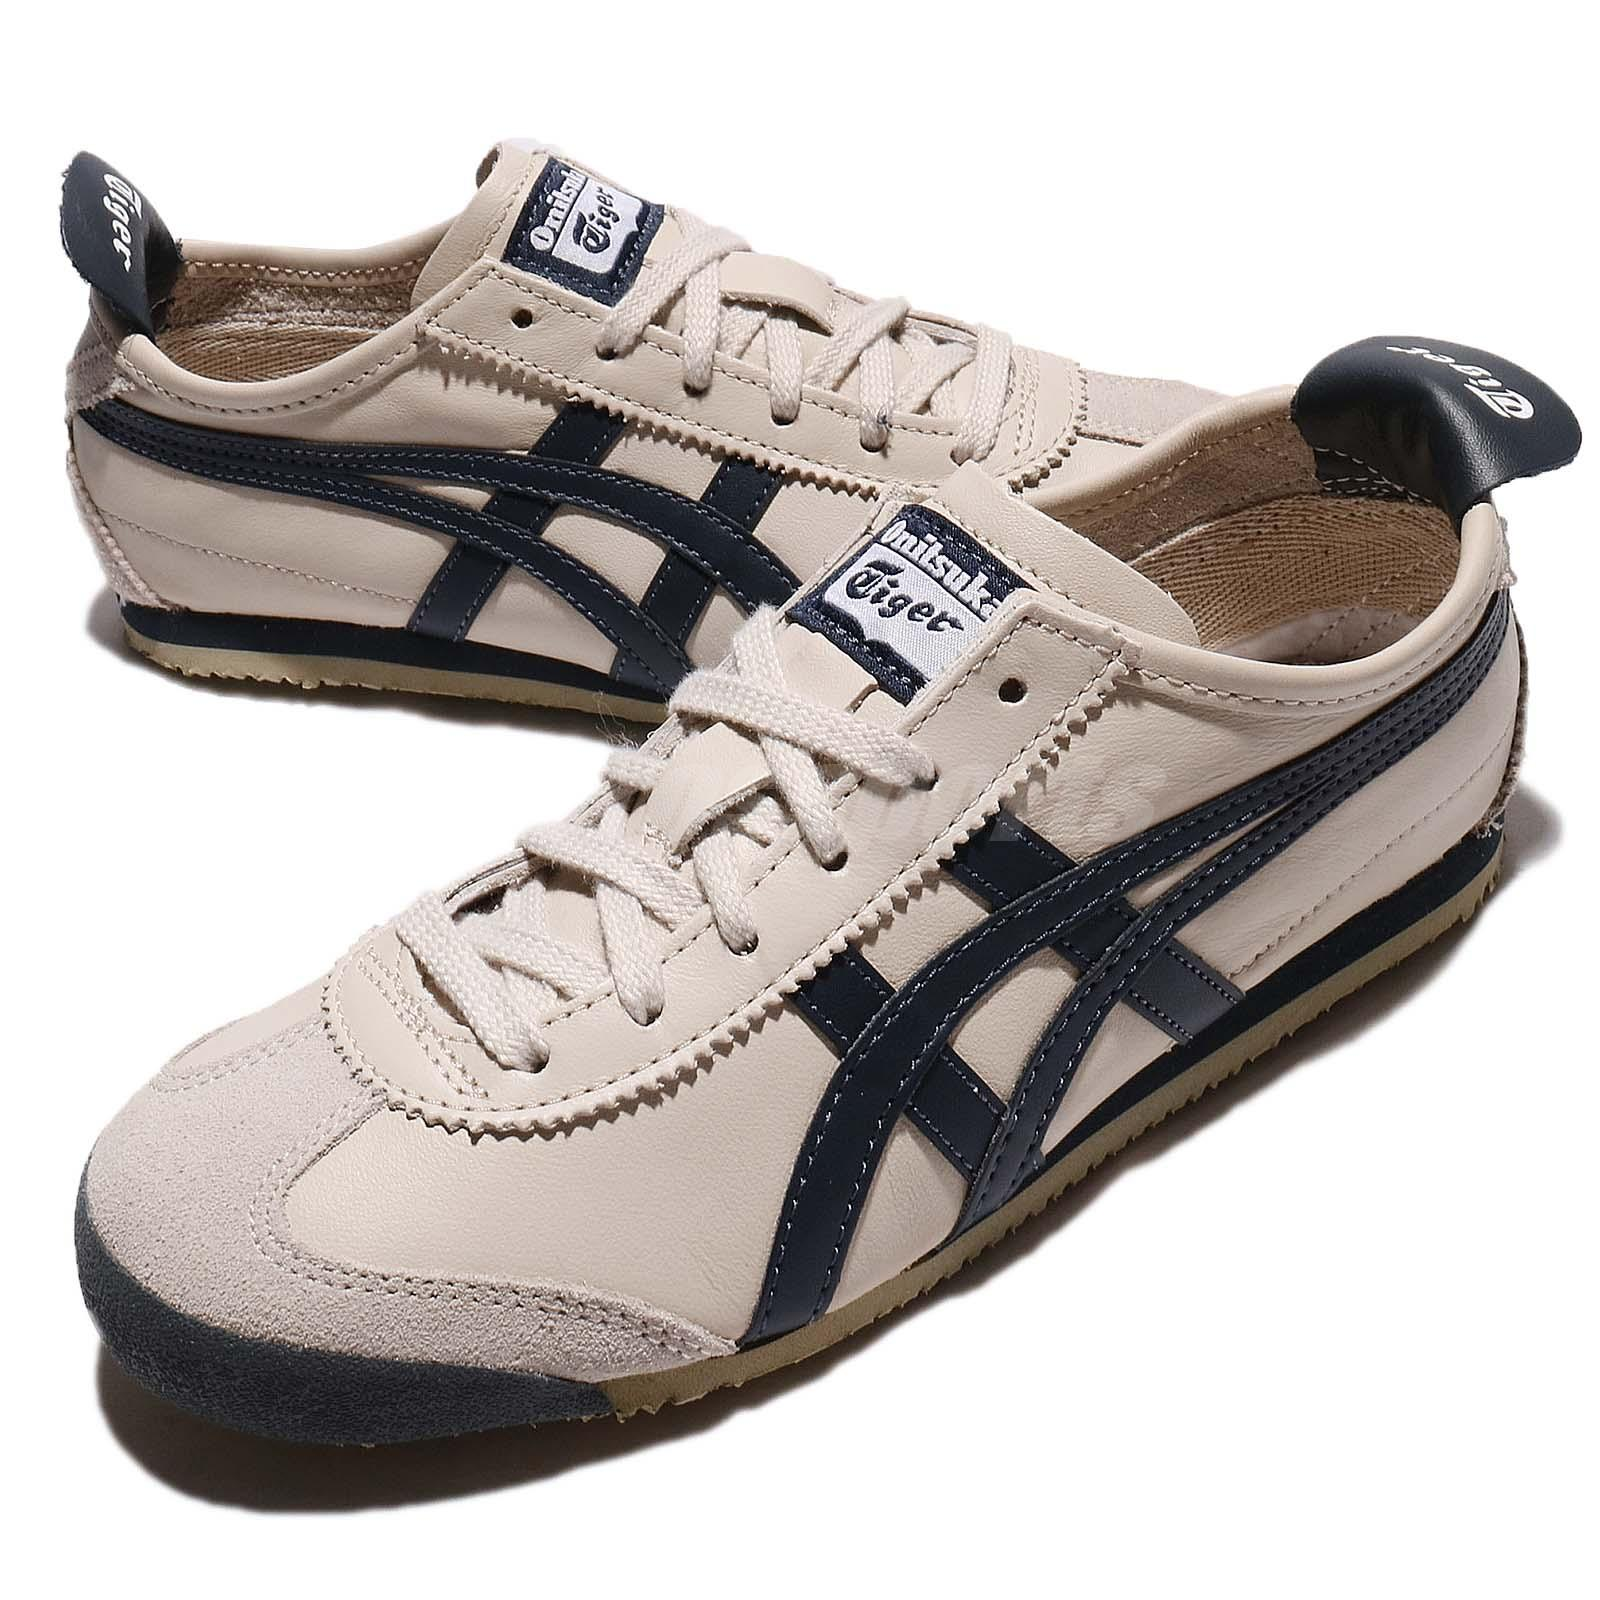 buy popular 8481f 1a0a4 Details about Asics Mexico Onitsuka Tiger 66 Birch India Ink Latte Men Shoe  Sneaker DL408-1659